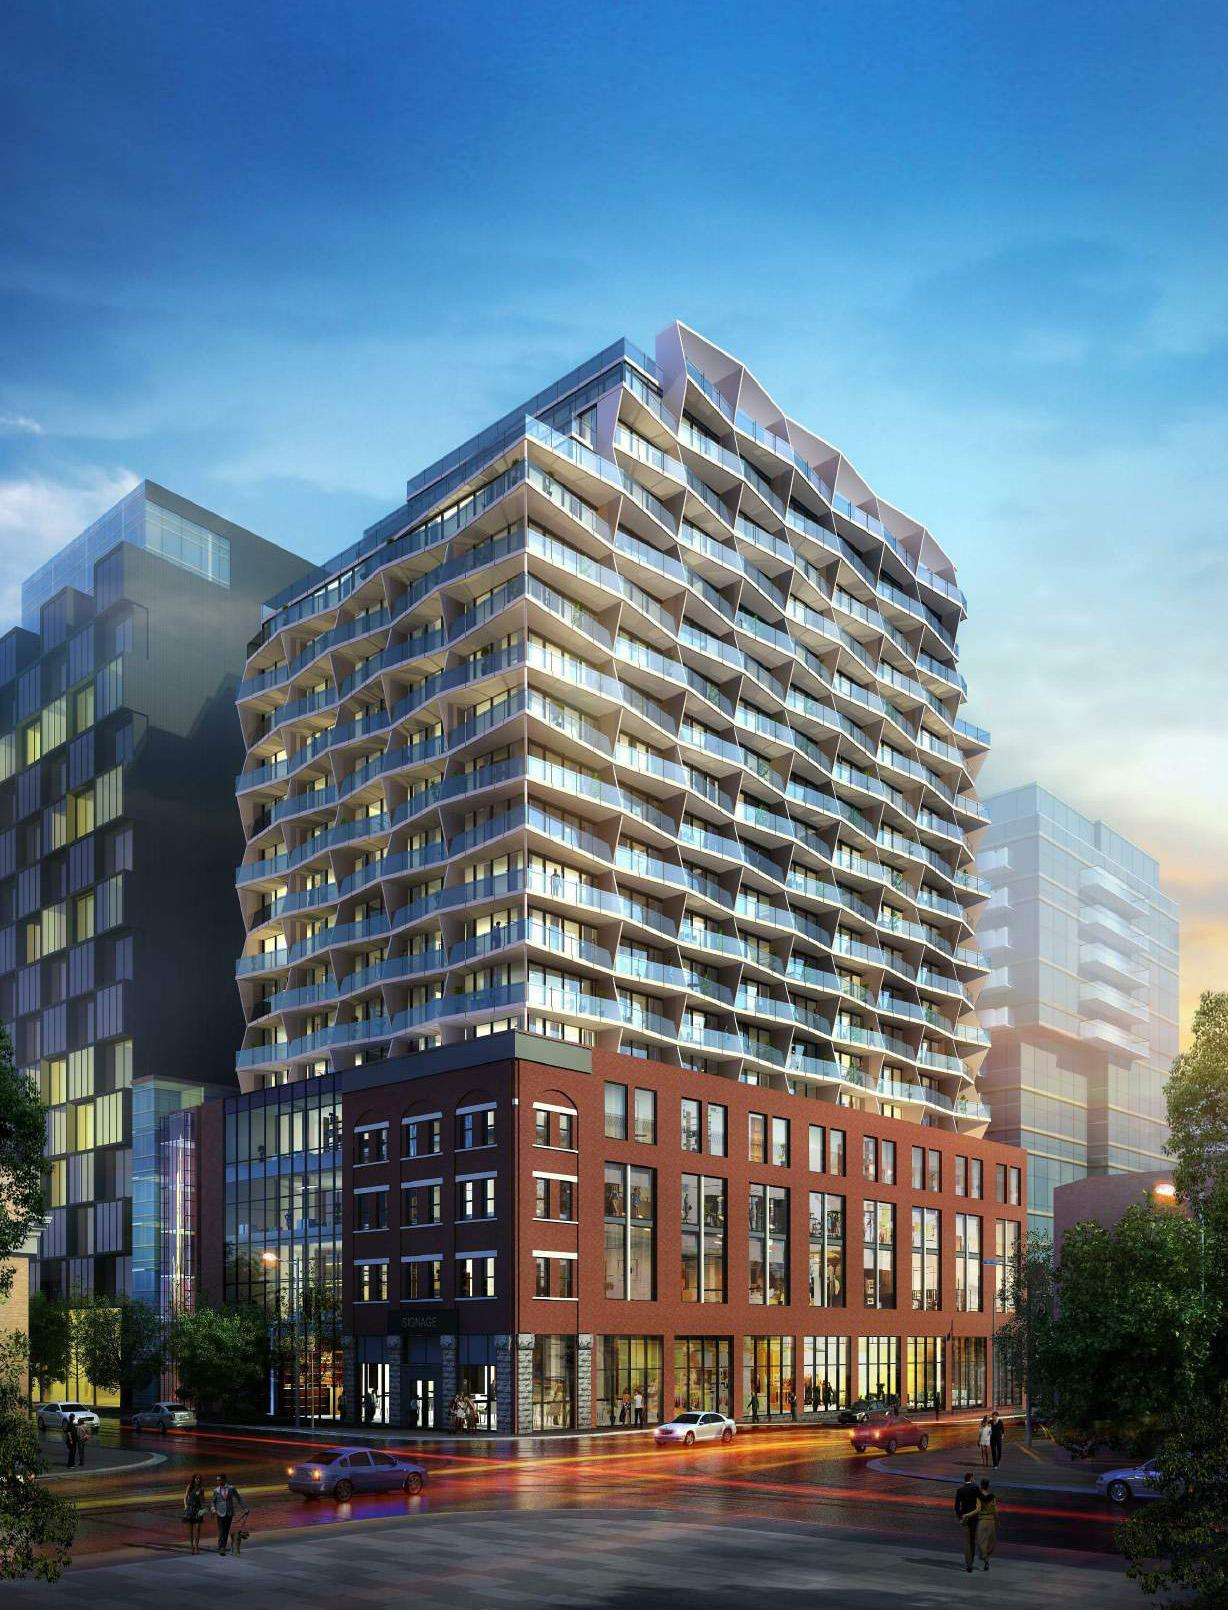 663 King Street West, Toronto, designed by Diamond Schmitt Architects for Main and Main